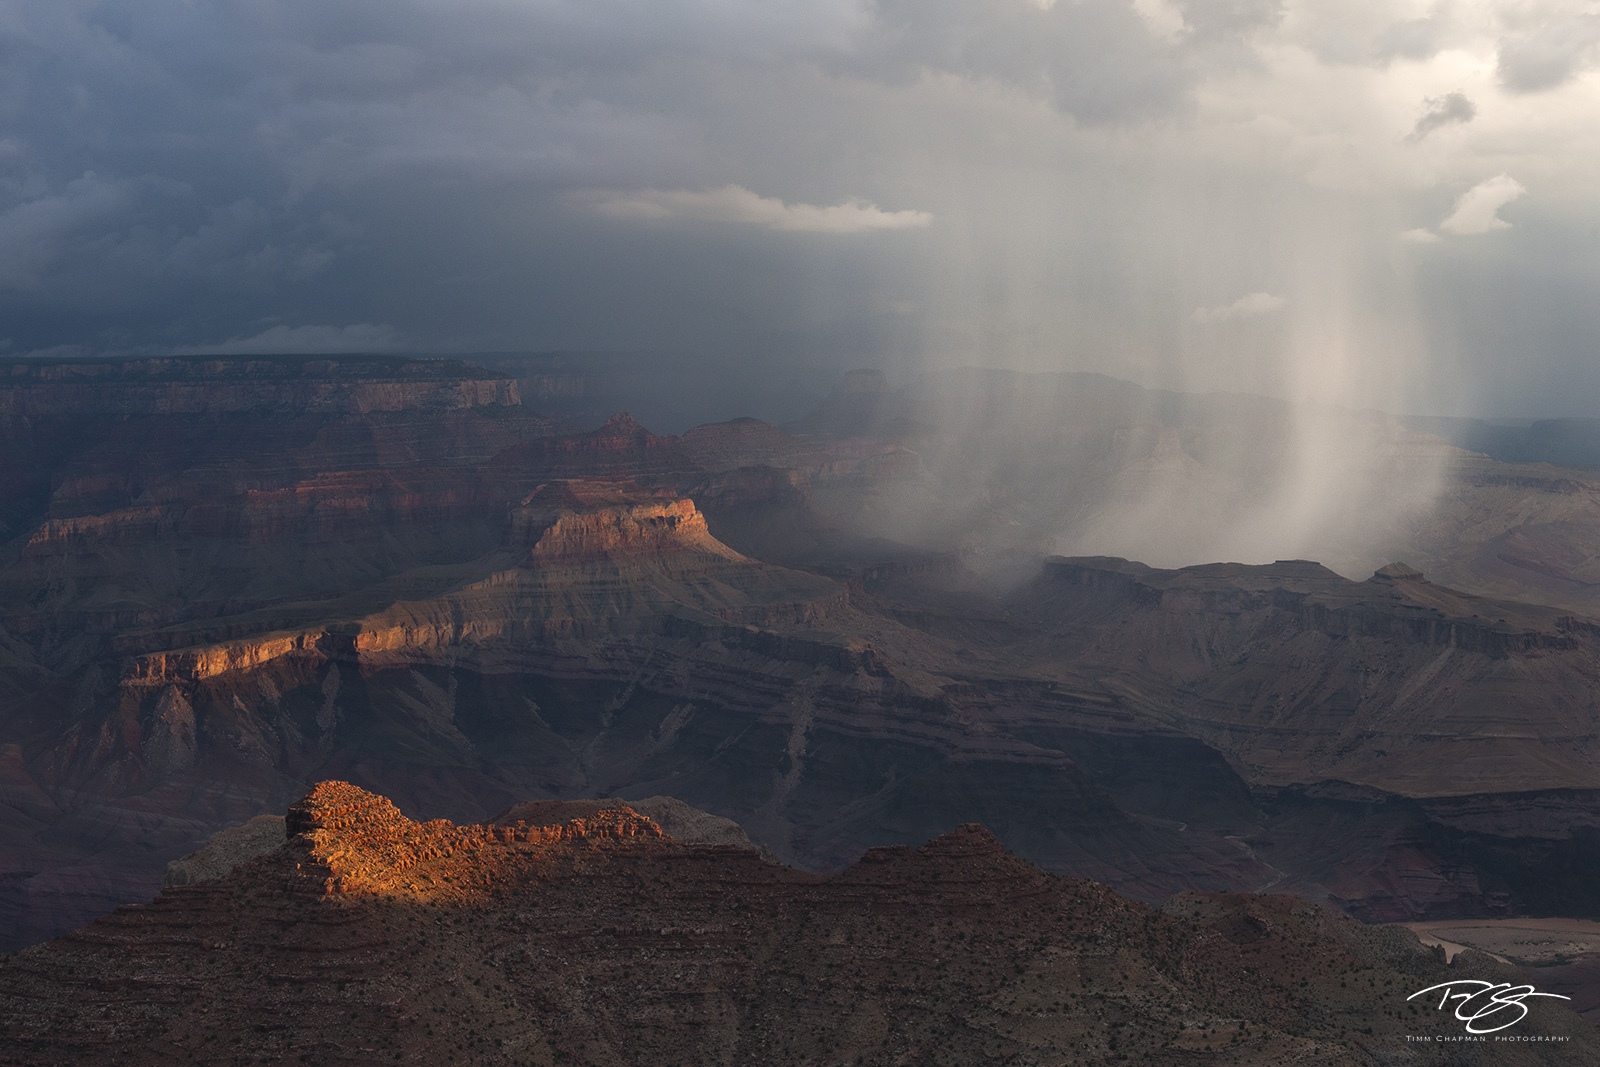 arizona, grand canyon, monsoon, showers, storm, rainstorm, thunder, lightning, Showers in the Canyon, eye of the storm, selective lighting, photo